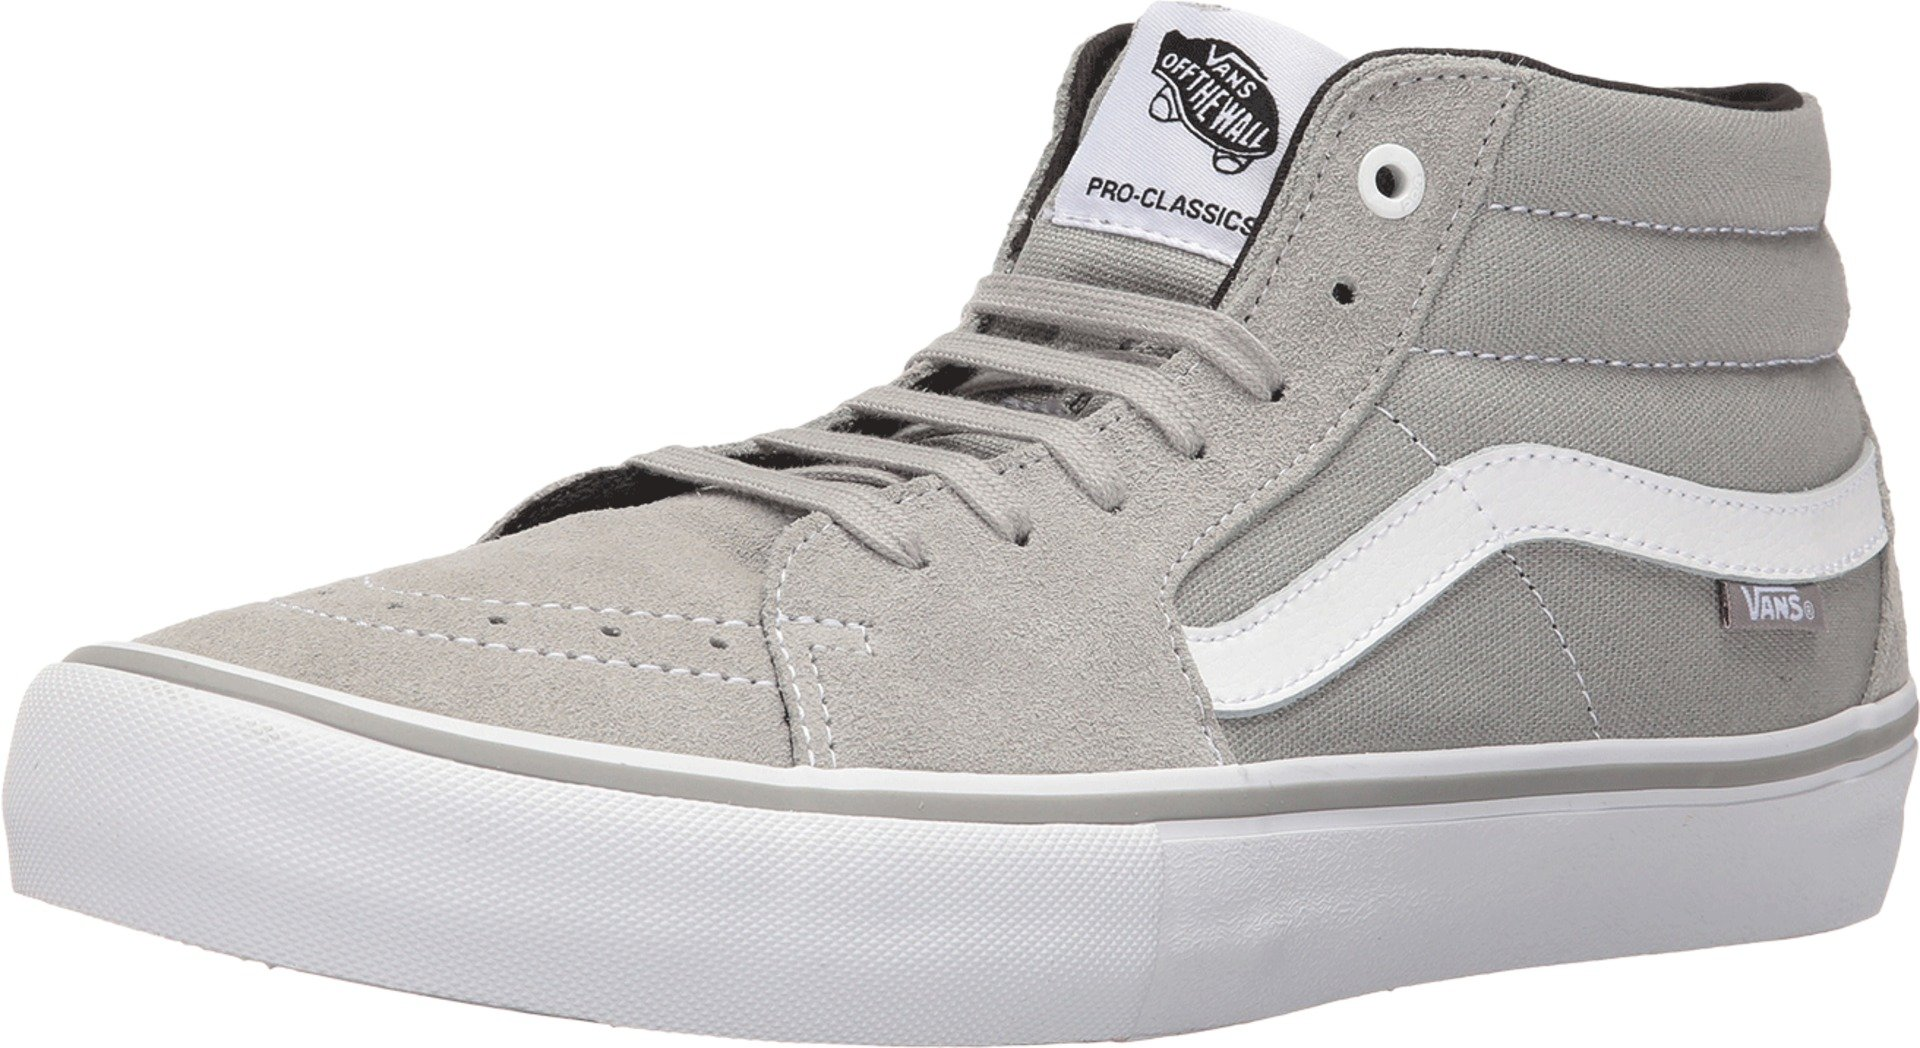 198424c464 Galleon - Vans Sk8 Mid Pro Mens 7   Womens 8.5 Drizzle Grey White  Skateboarding Shoes